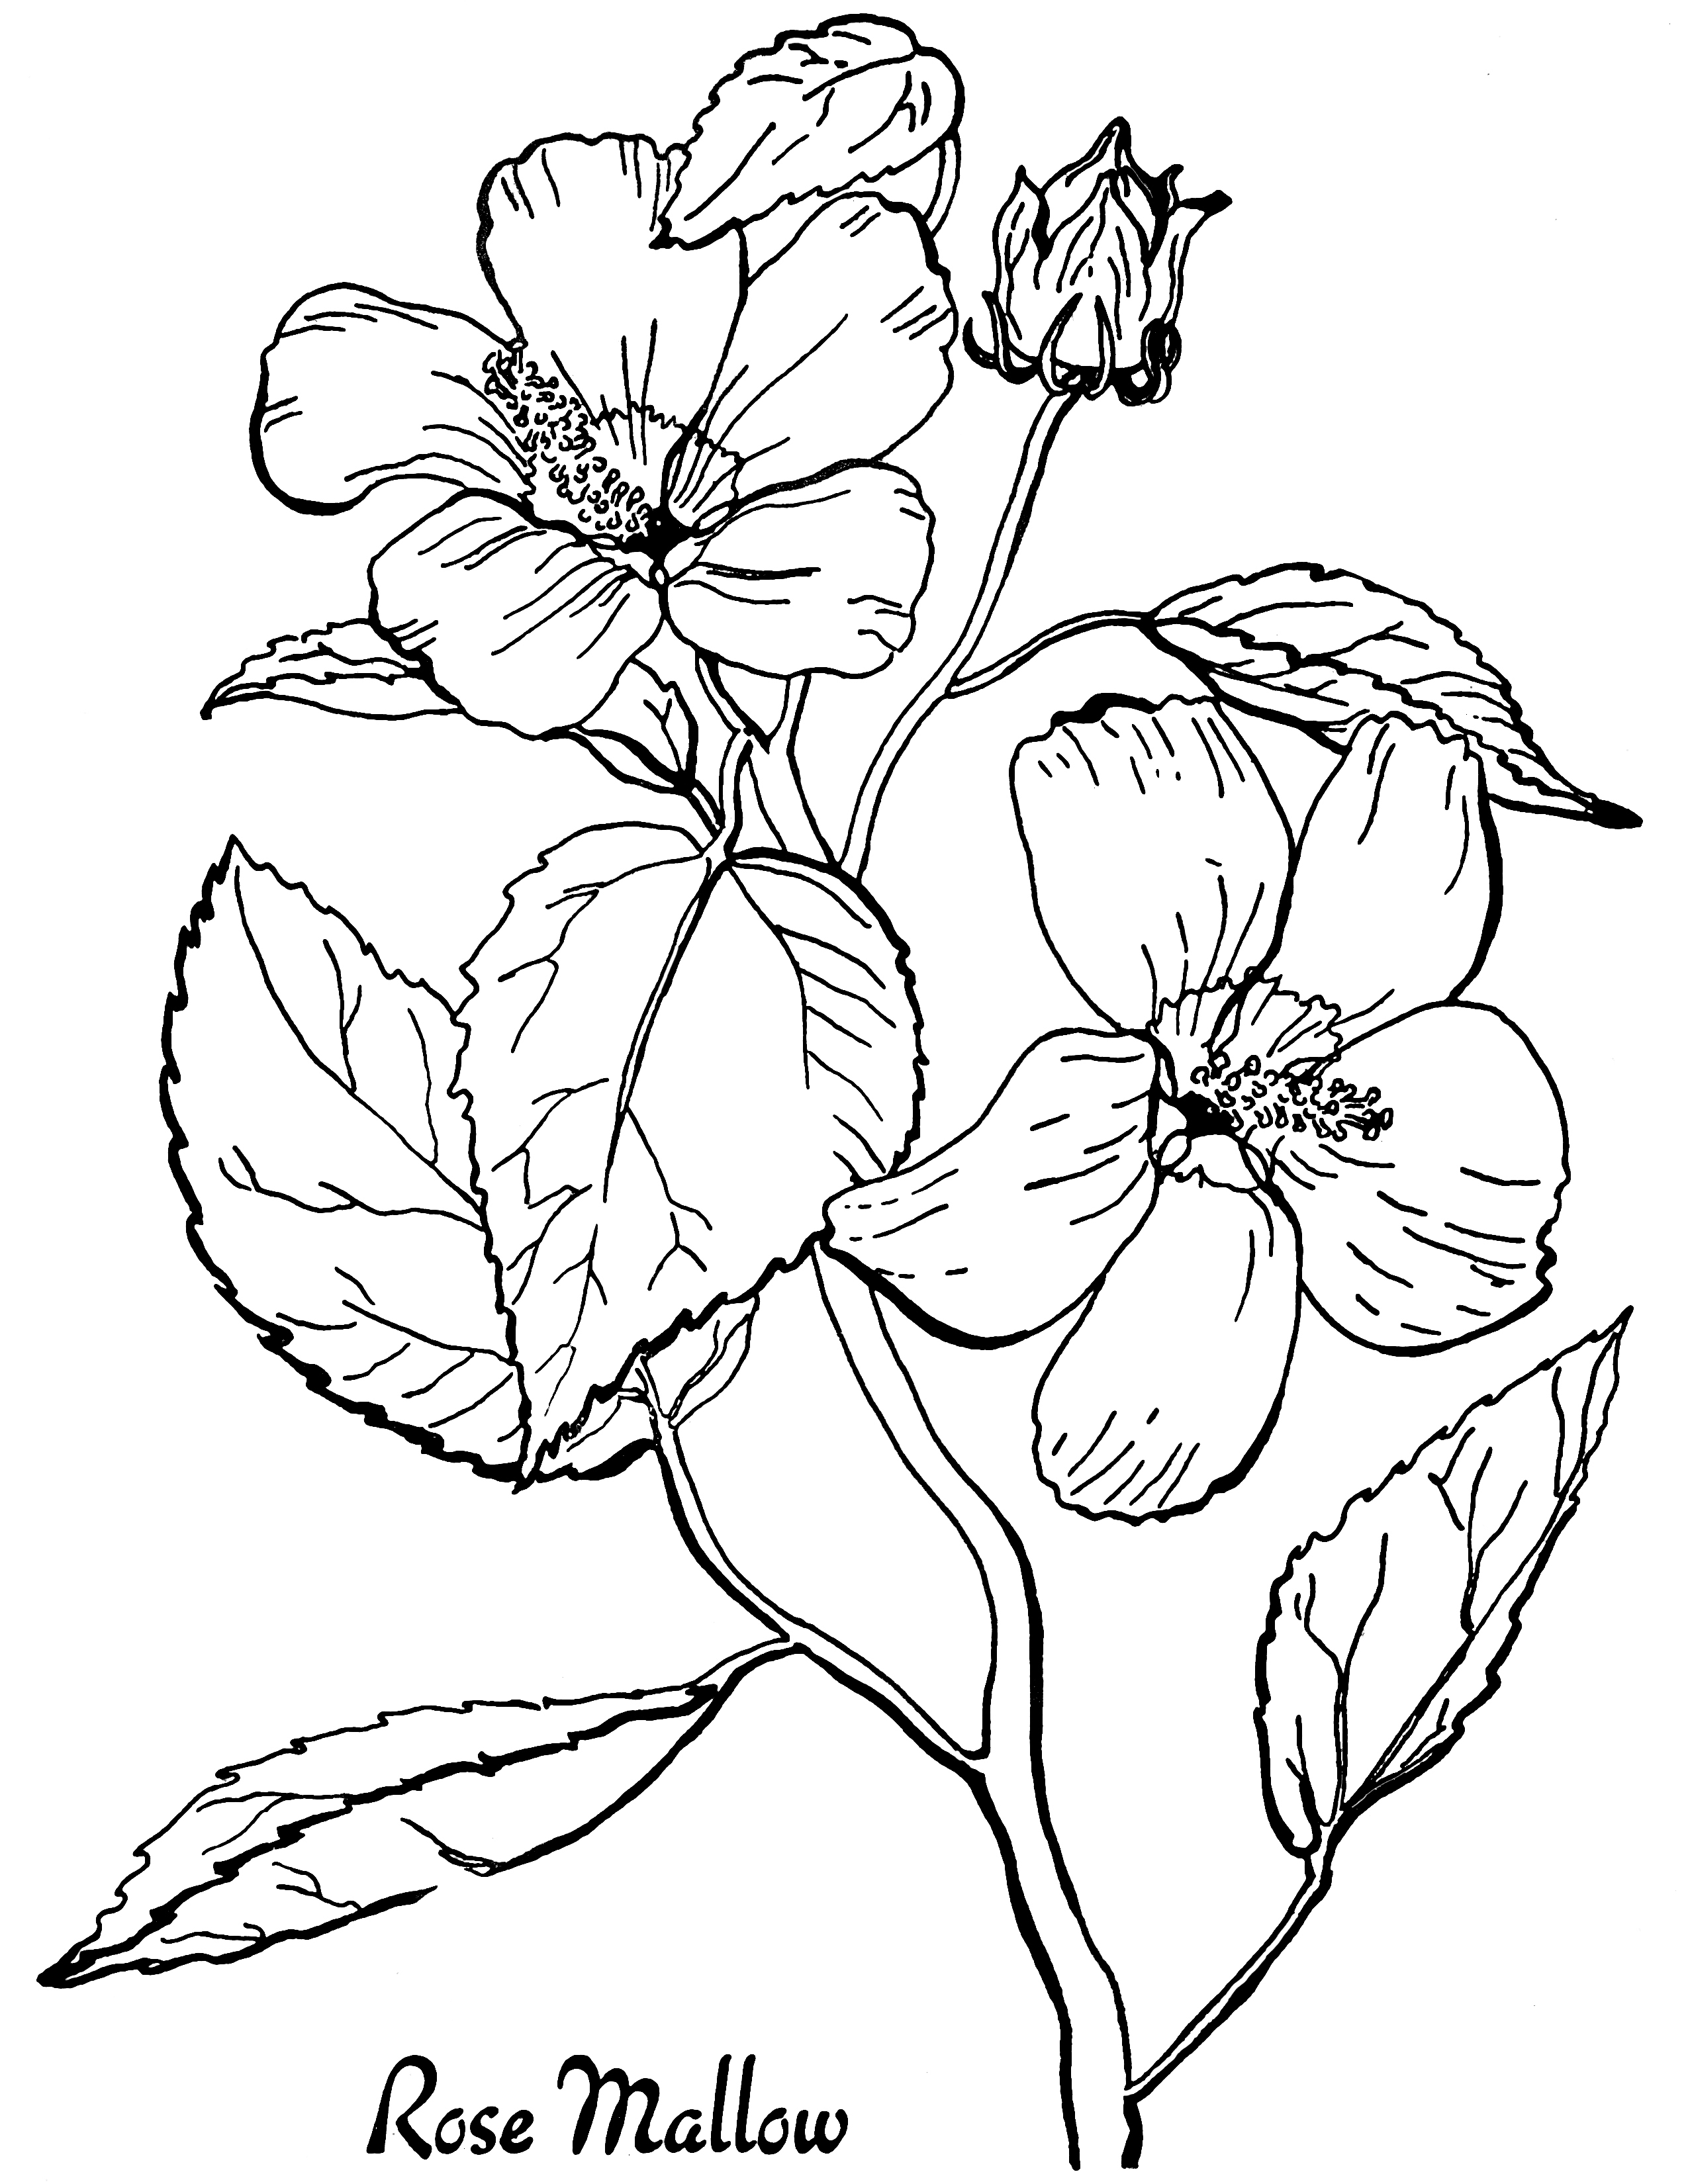 rose coloring book page roses coloring pages to download and print for free page rose coloring book